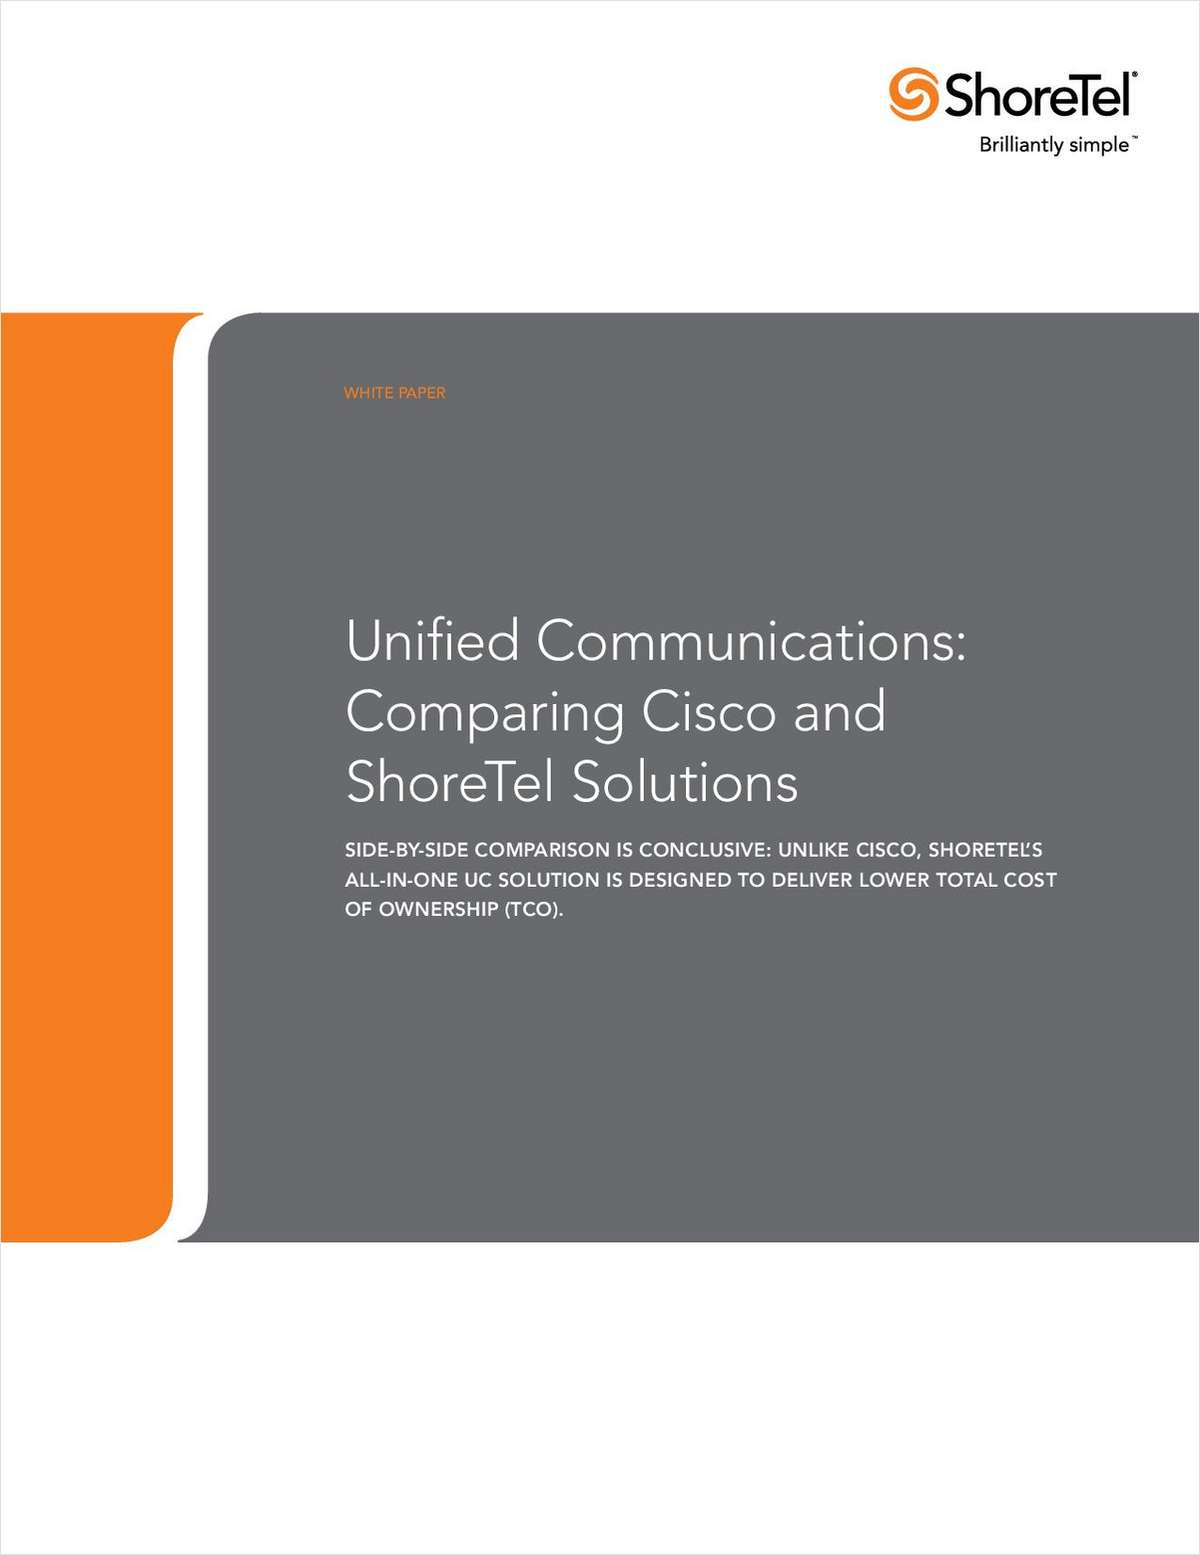 Comparison of Cisco and ShoreTel Unified Communication Solutions